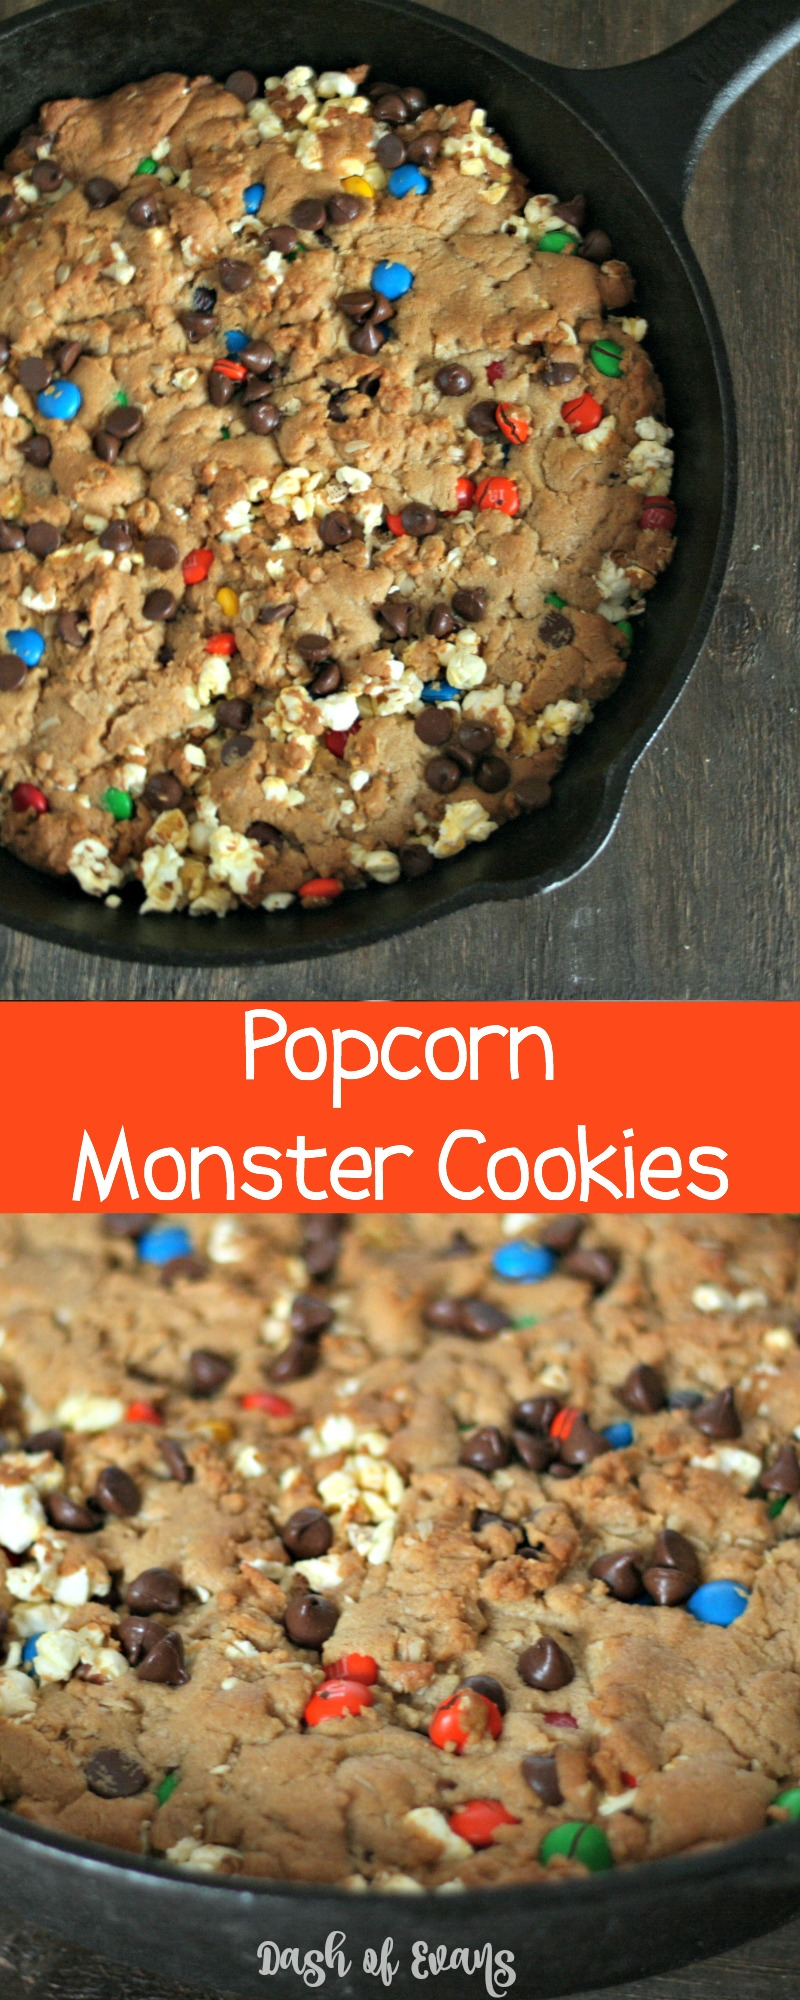 What makes monster cookies even better? POPCORN! #MakeItAMovieNight (ad)